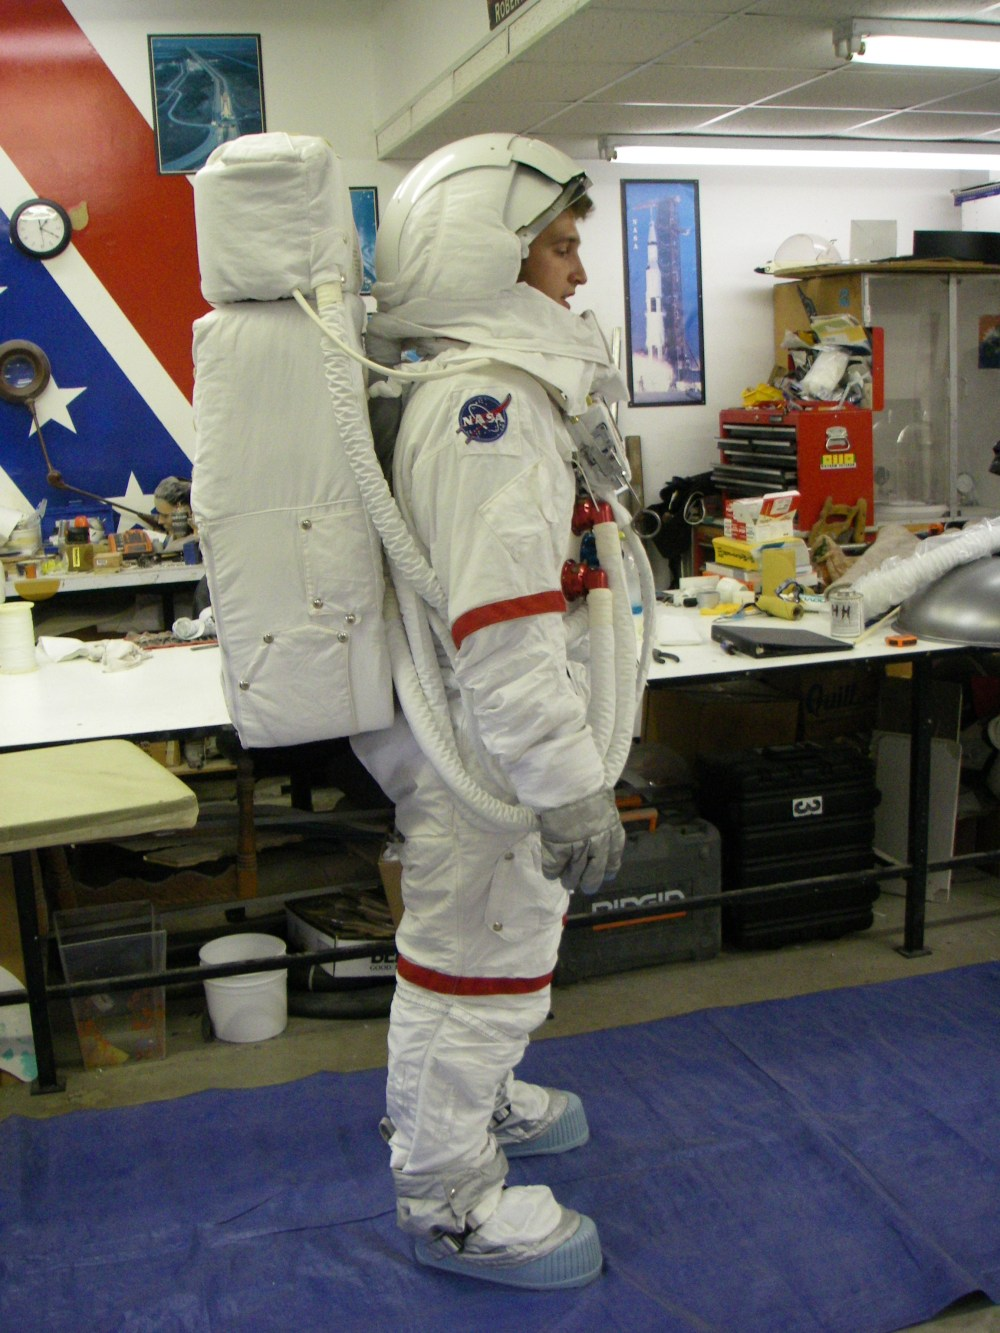 medium resolution of fact guard lee spacesuits can be found in displays at the smithsonian hamilton sundstrand and madame tussaud s wax museum